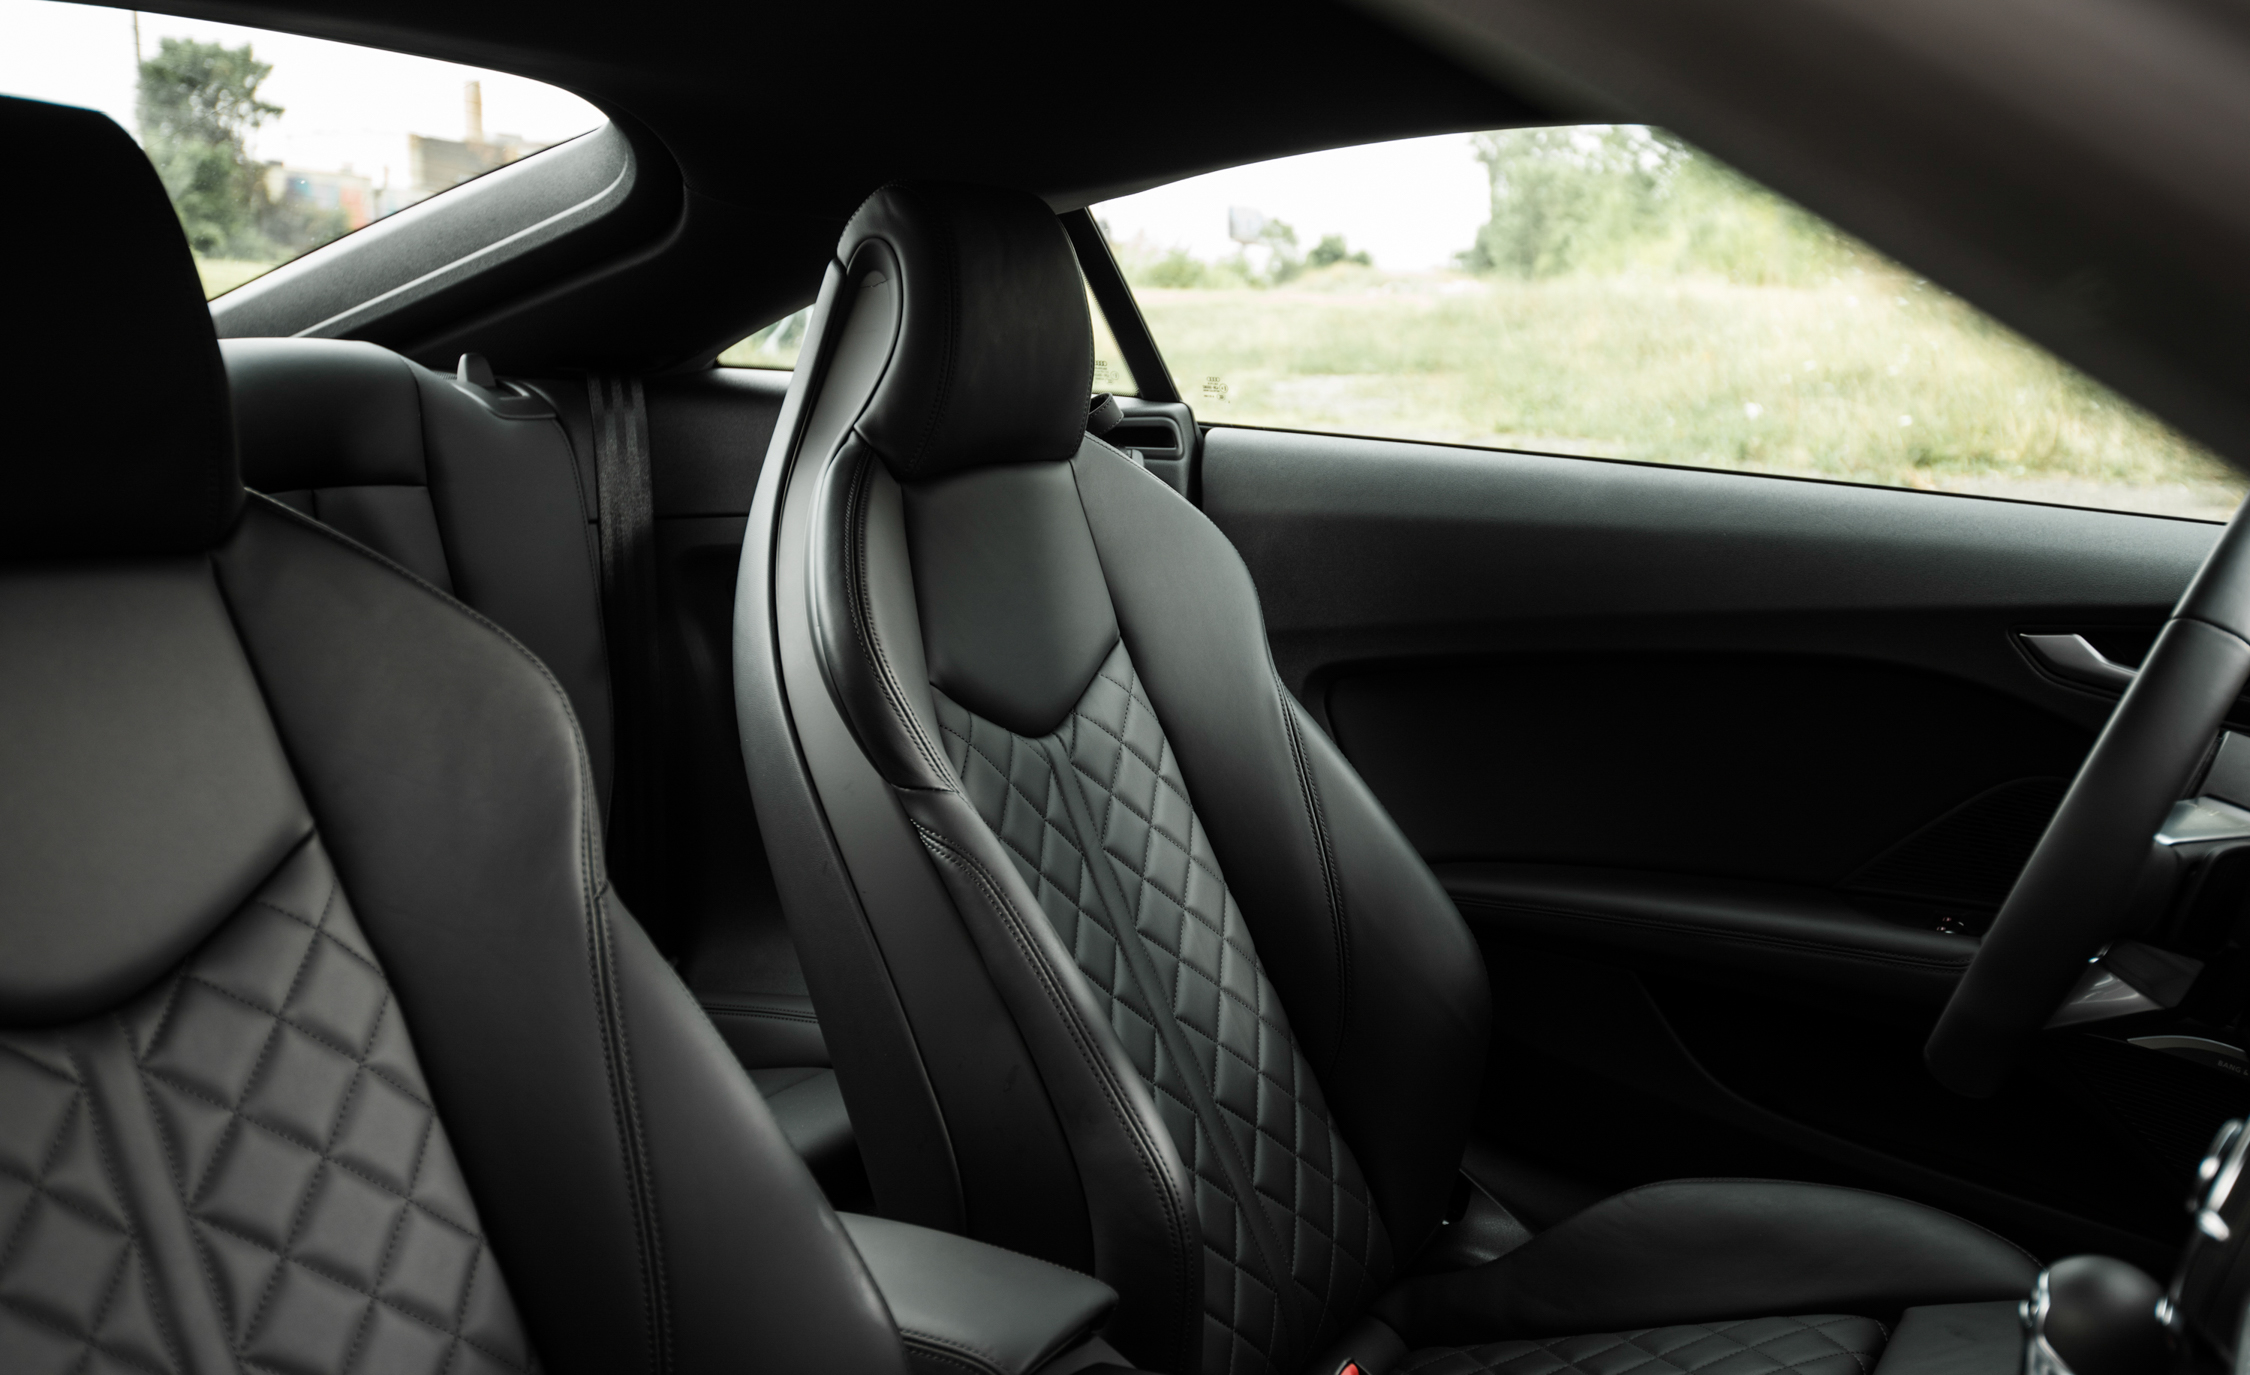 2016 Audi TT Coupe Interior Front Seats